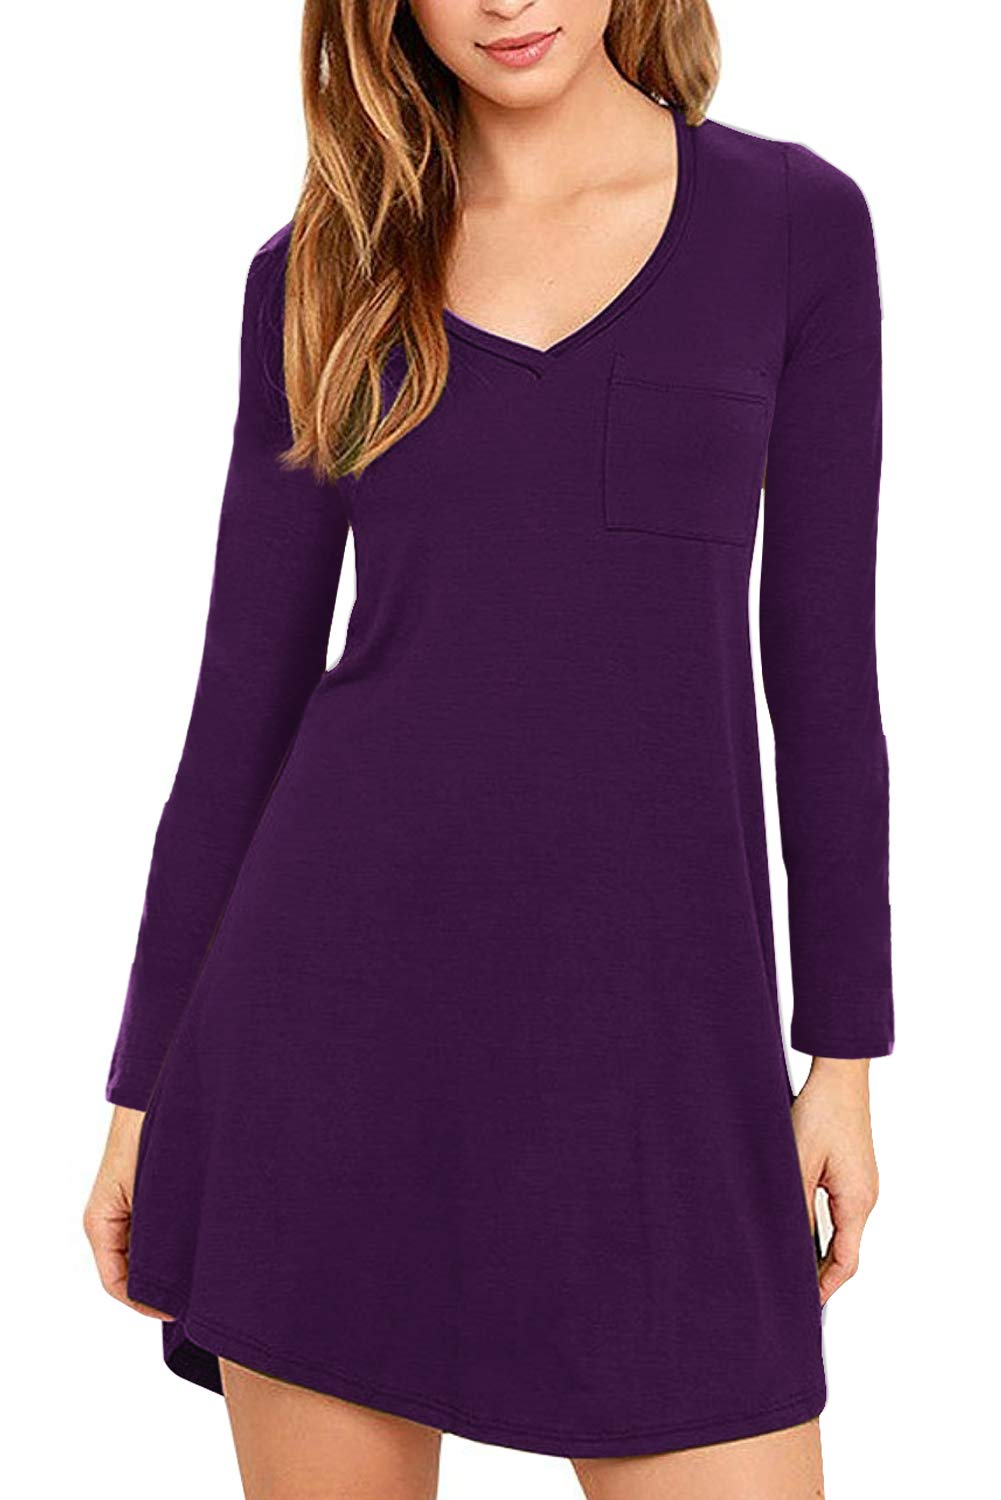 Eanklosco Womens Casual Short Sleeve Plain Pocket V Neck T Shirt Tunic Dress (Purple-1, L)